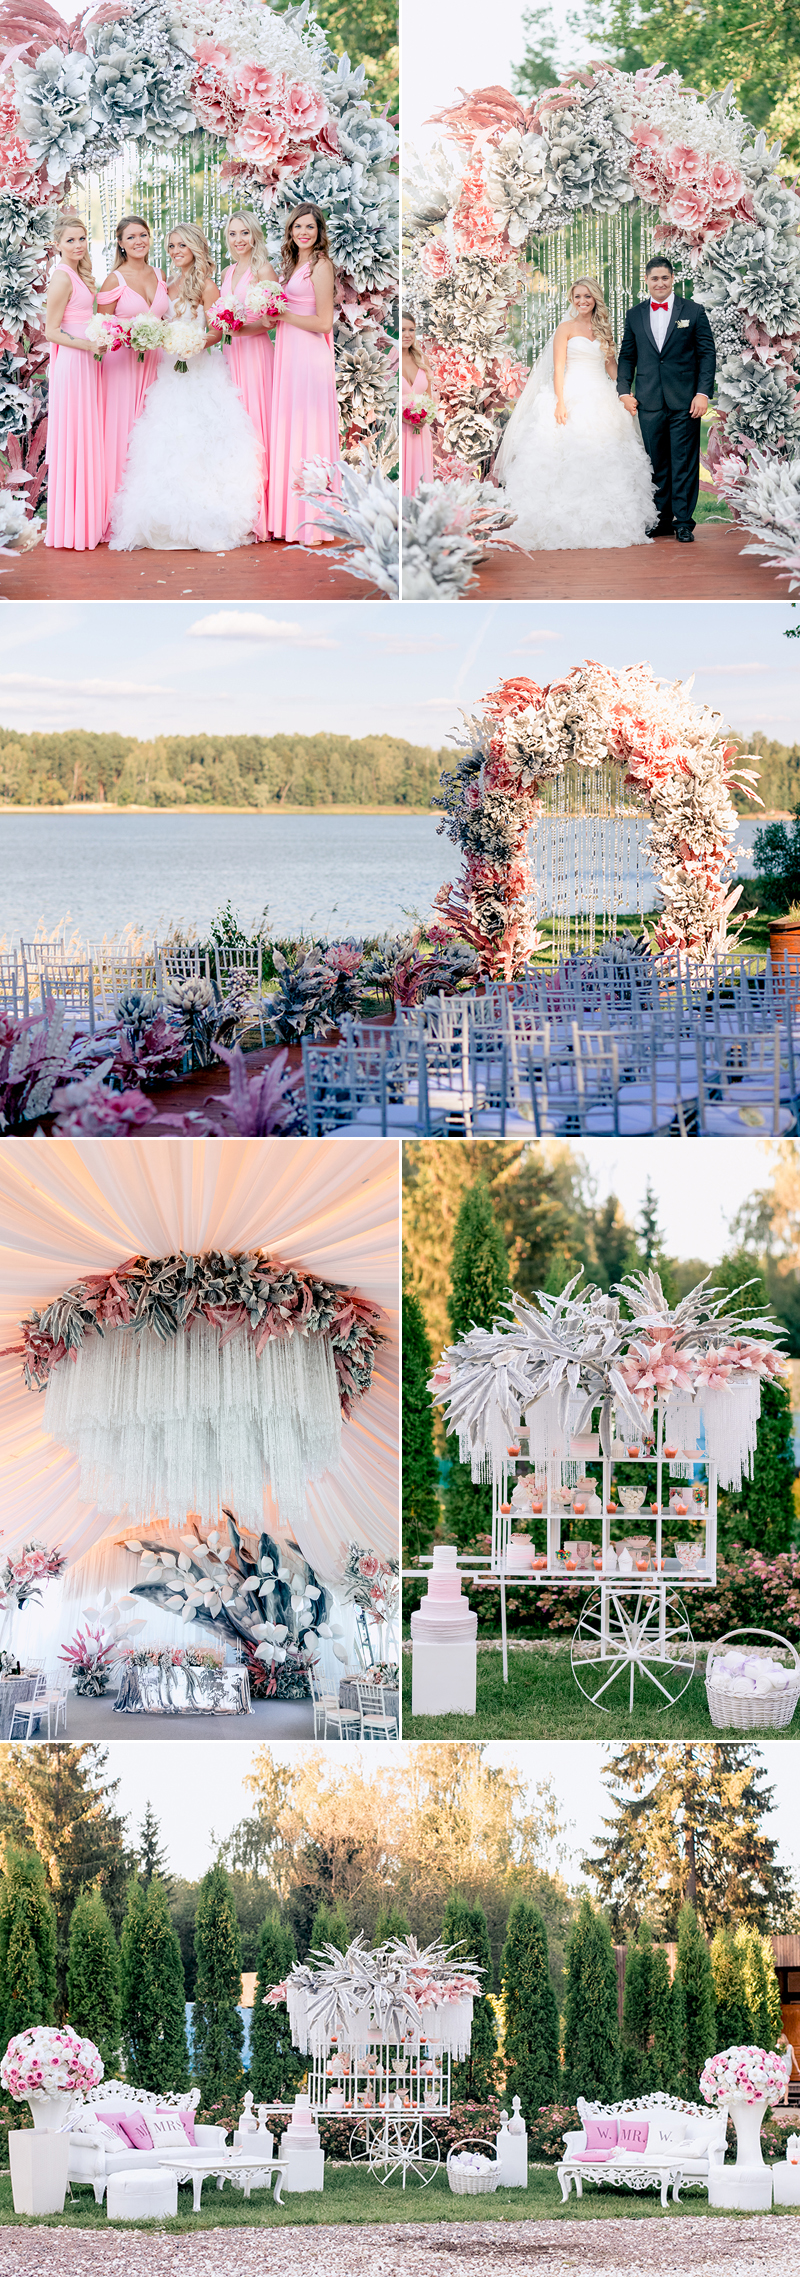 7 Incredibly Magical Themes For Spring Fairytale Weddings